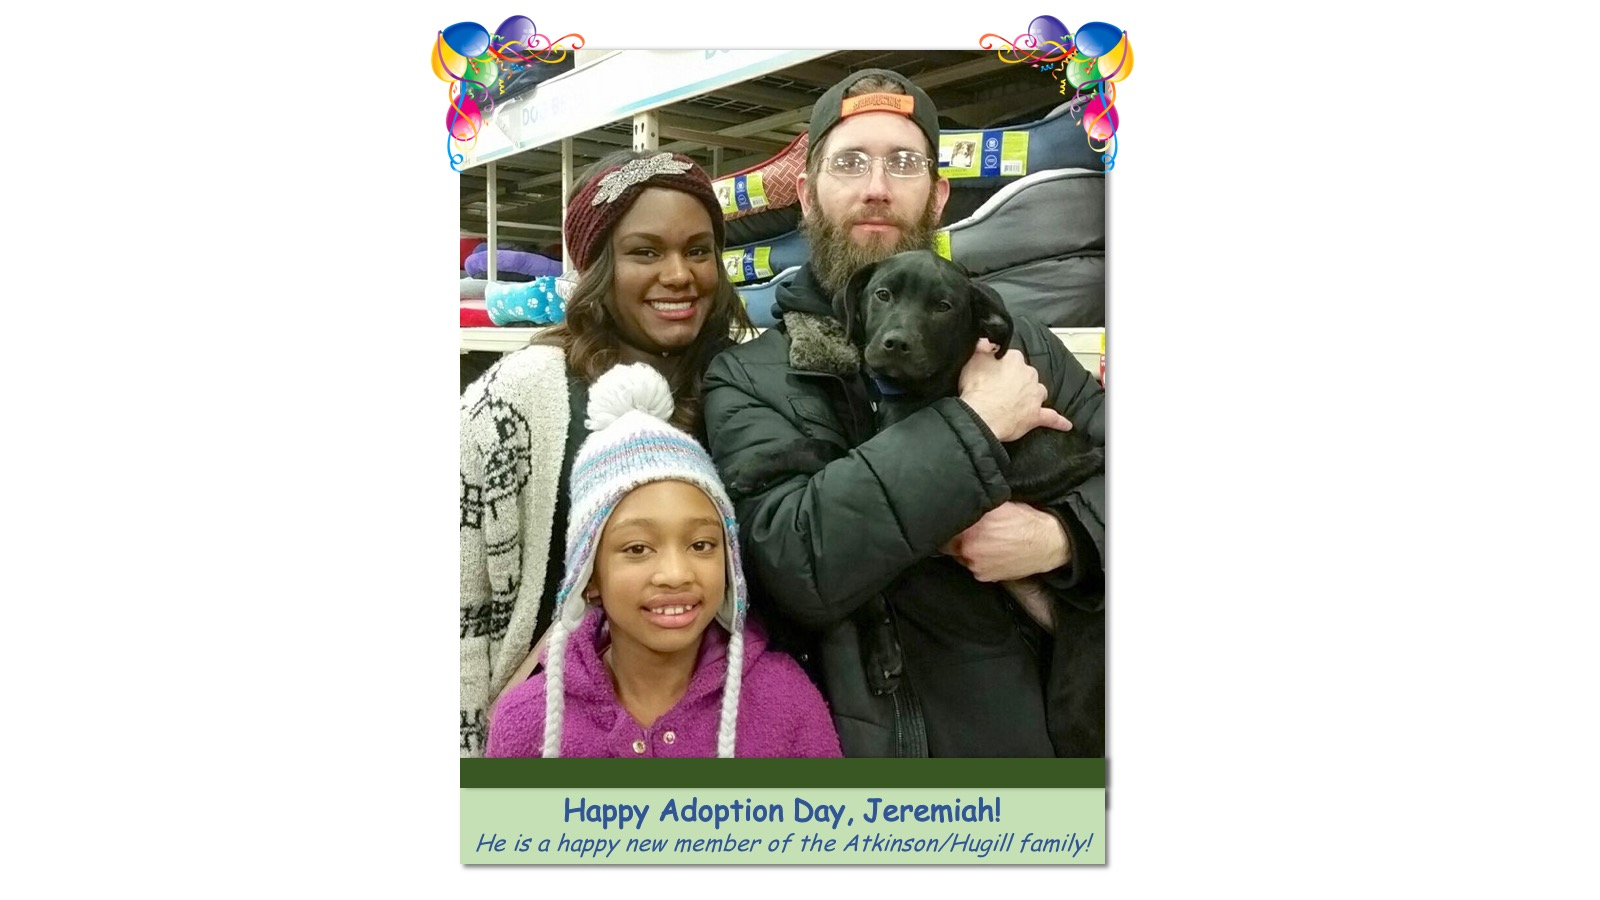 Jeremiah_Adoption_Photo_2018.jpg